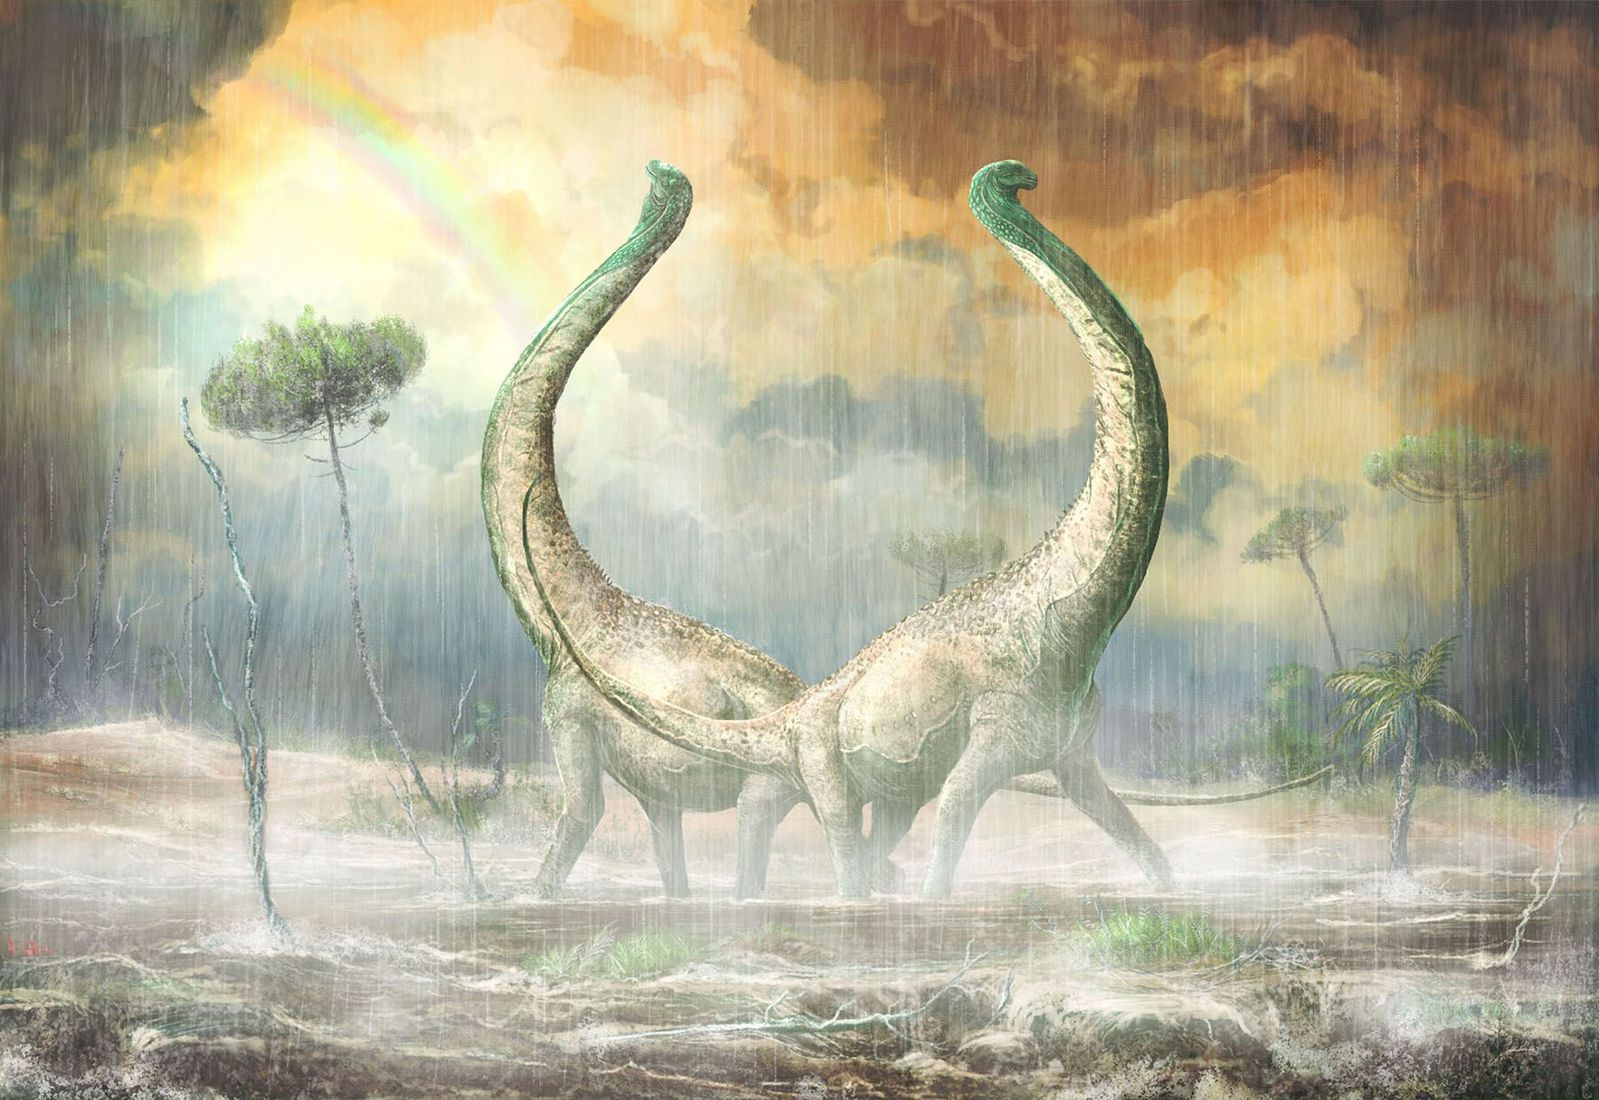 Meet The Dinosaur With The Heart Shaped Tail Bone Smart News Smithsonian Magazine